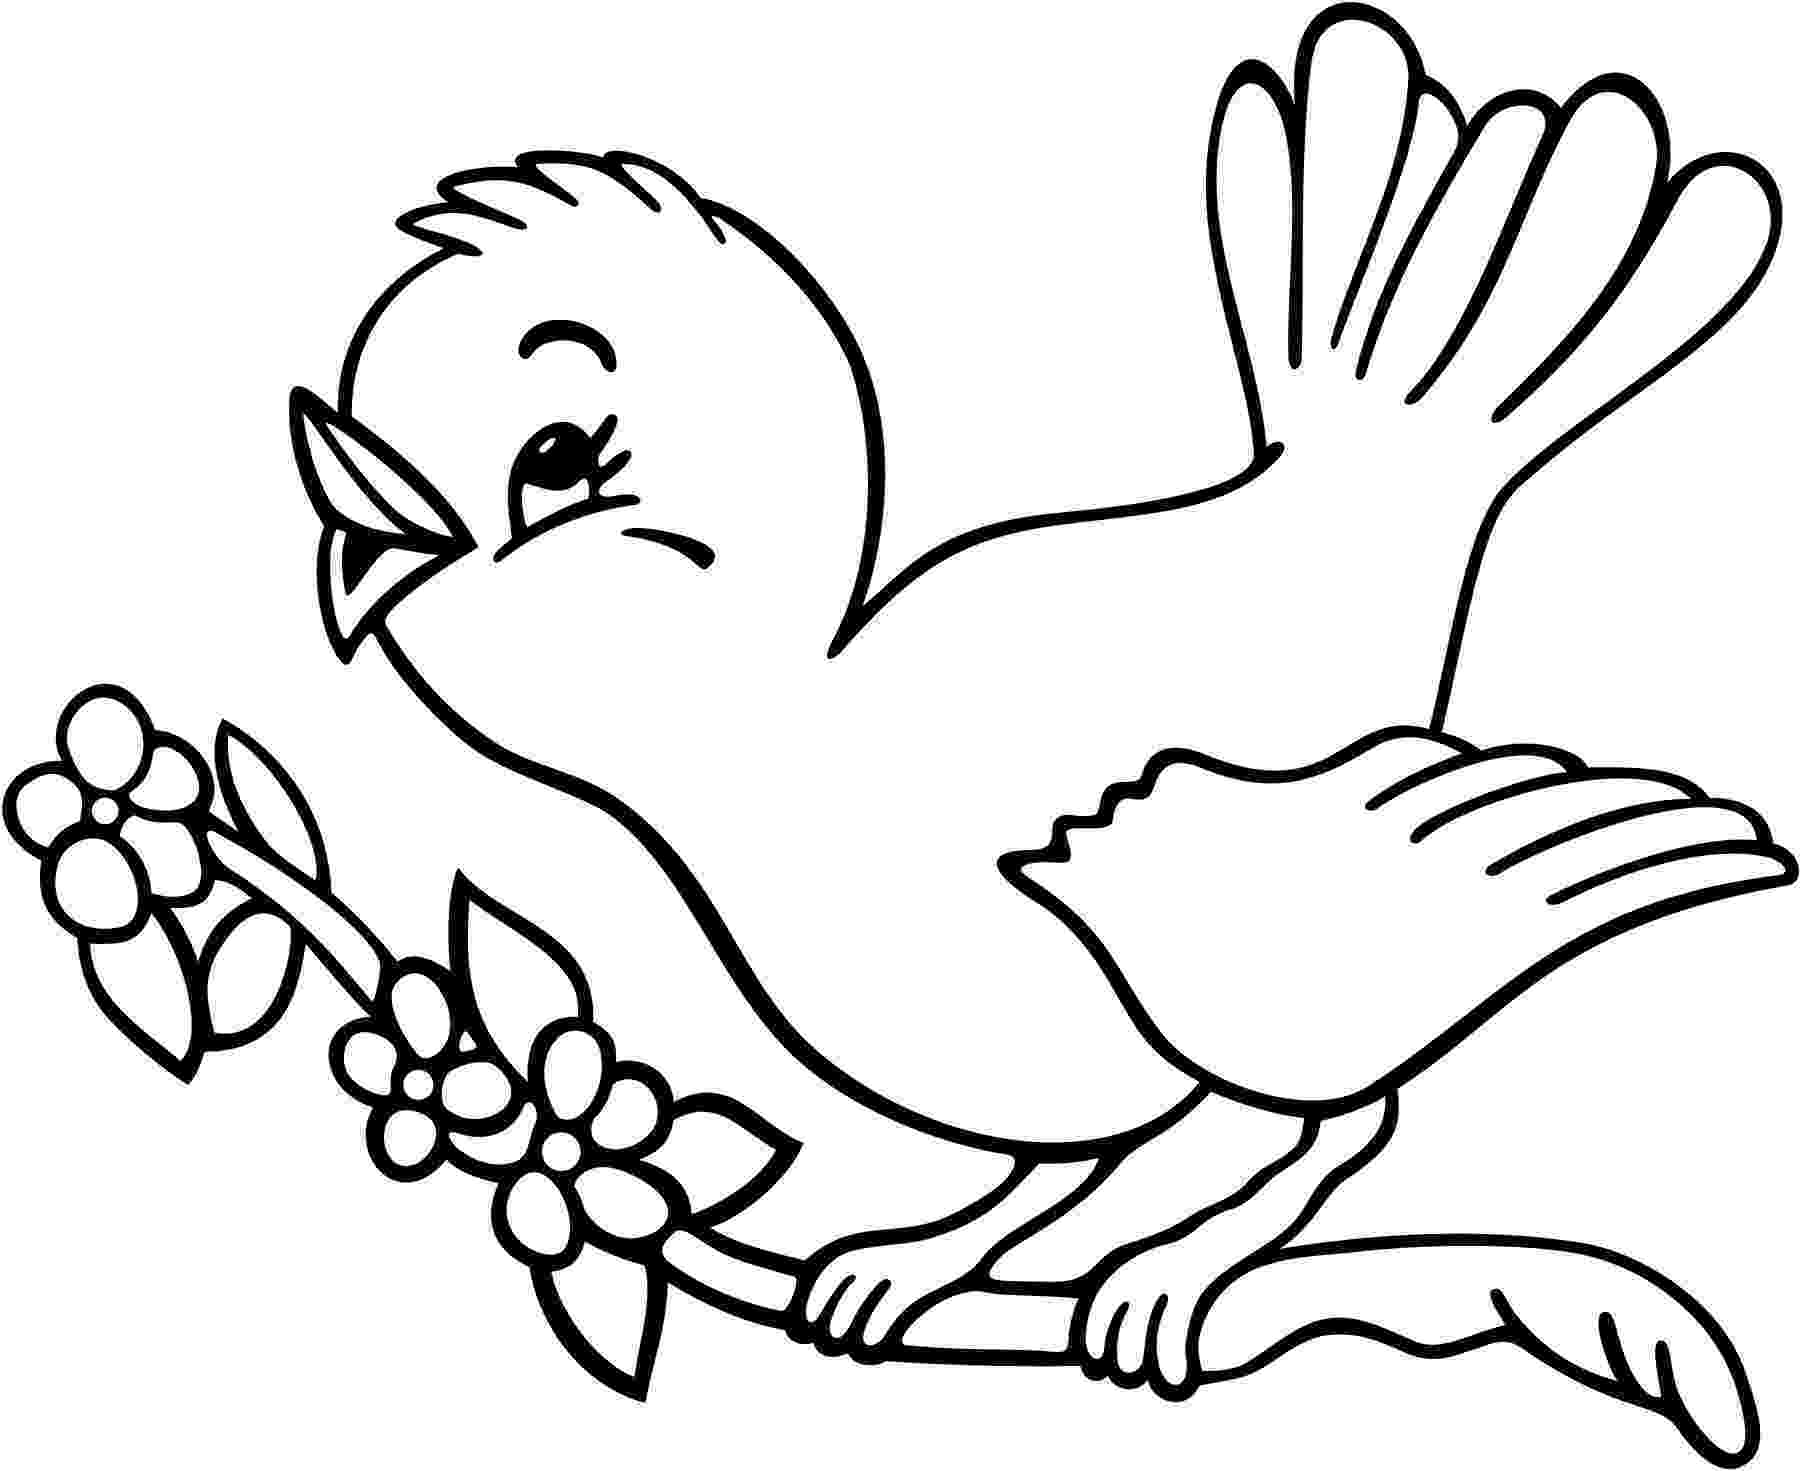 free printable bird coloring pages pin by birgit keys on clip art birds bird coloring pages free pages printable bird coloring